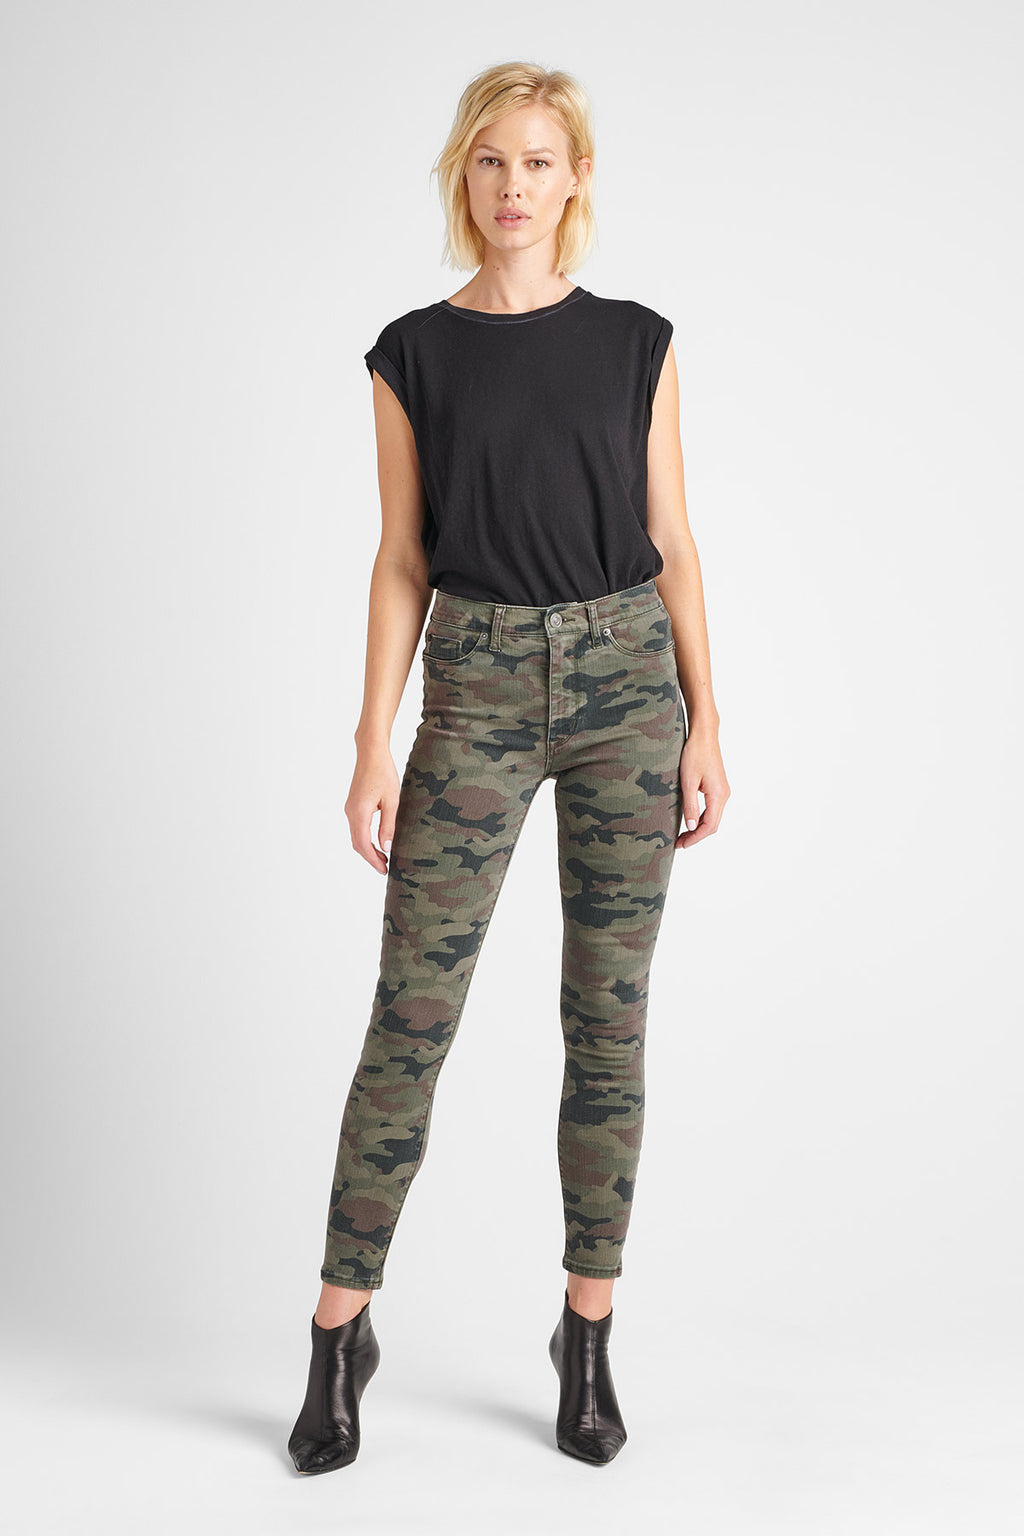 BARBARA HIGH RISE SUPER SKINNY ANKLE JEAN - DEPLOYED CAMO - Image 1